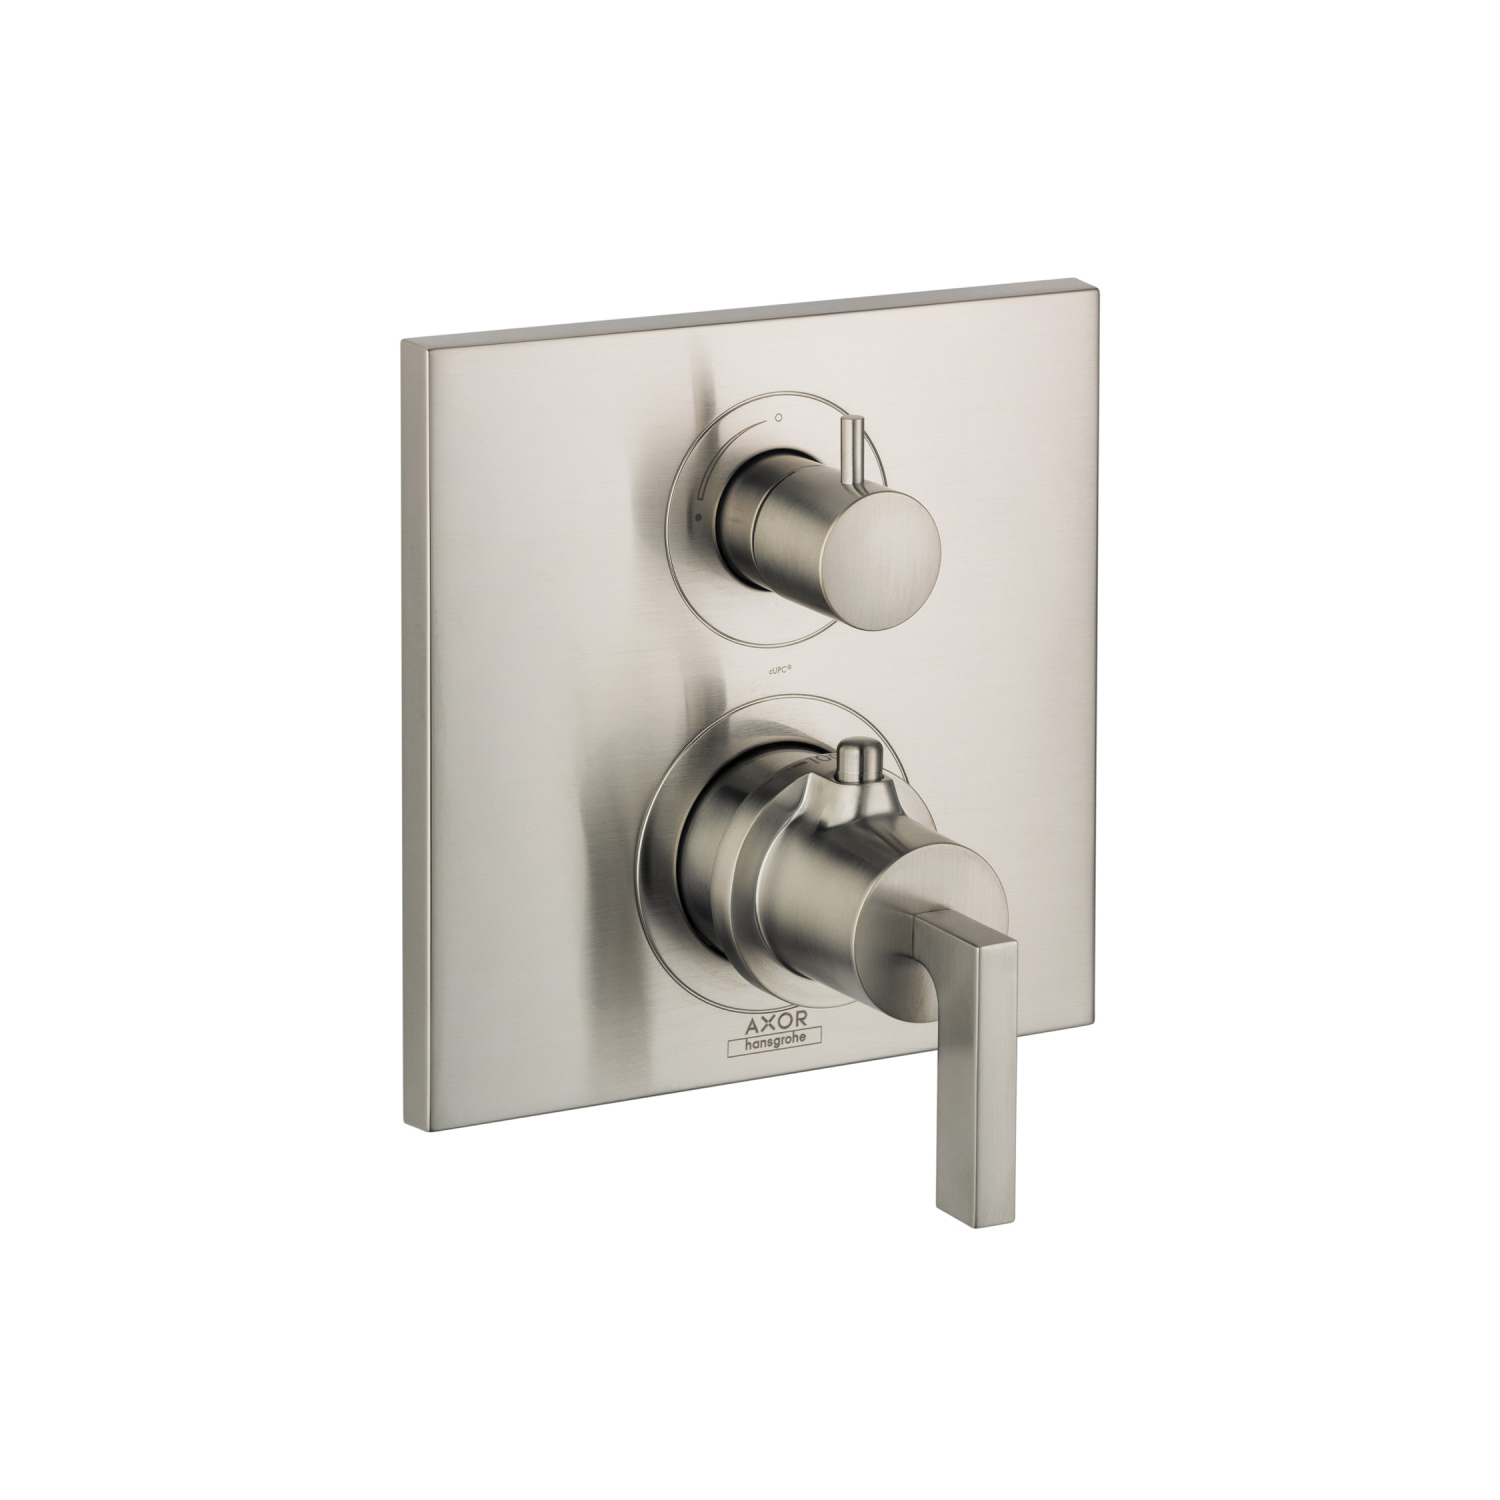 Hansgrohe 39700821 Axor Citterio Thermostatic Trim, Hand Shower Yes/No: No, Brushed Nickel